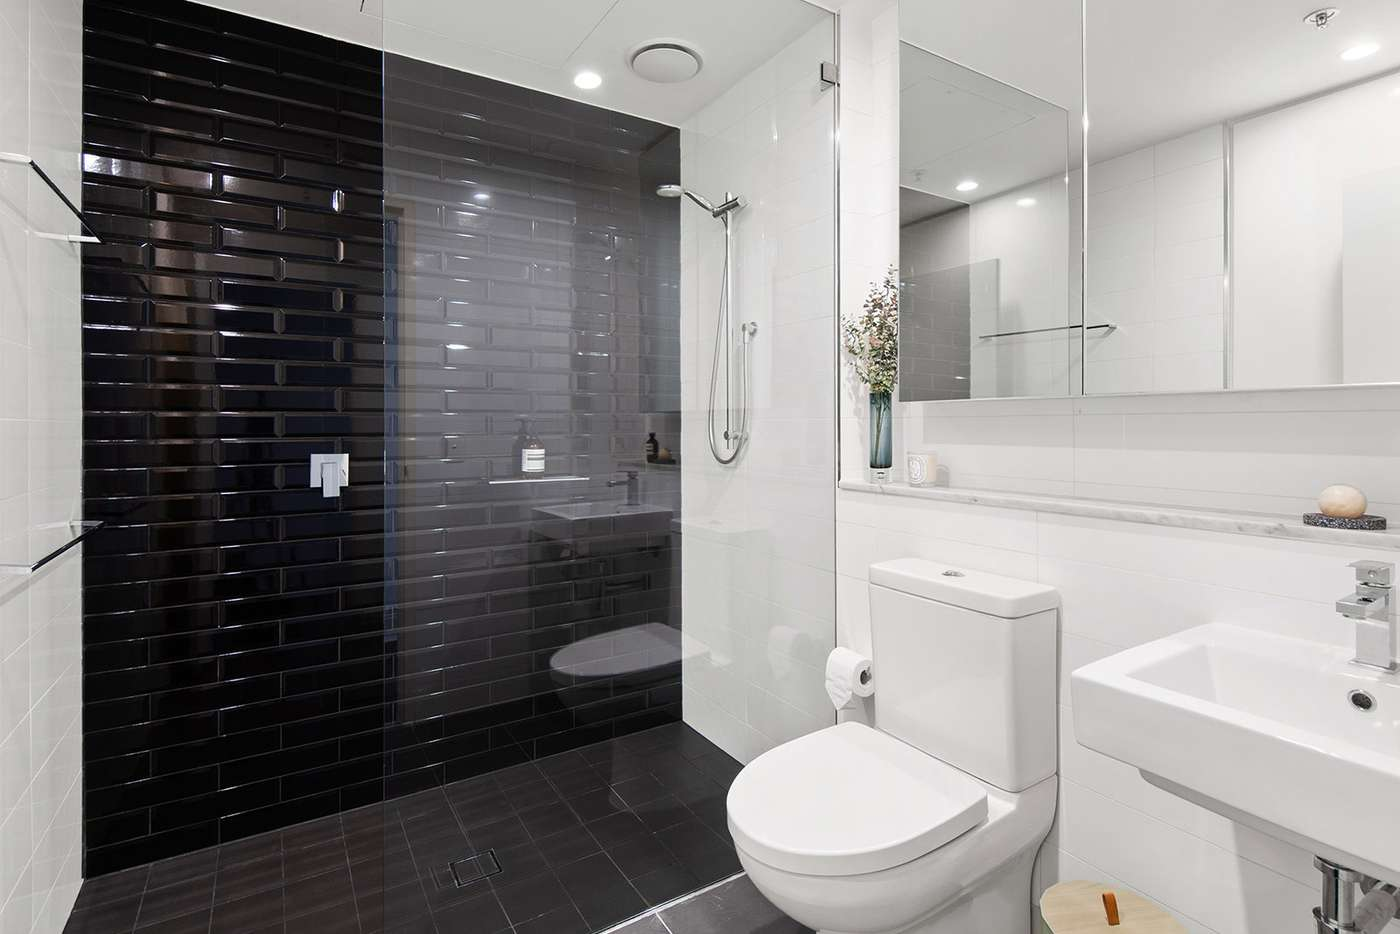 Sixth view of Homely apartment listing, 104/18 Bayswater Road, Potts Point NSW 2011